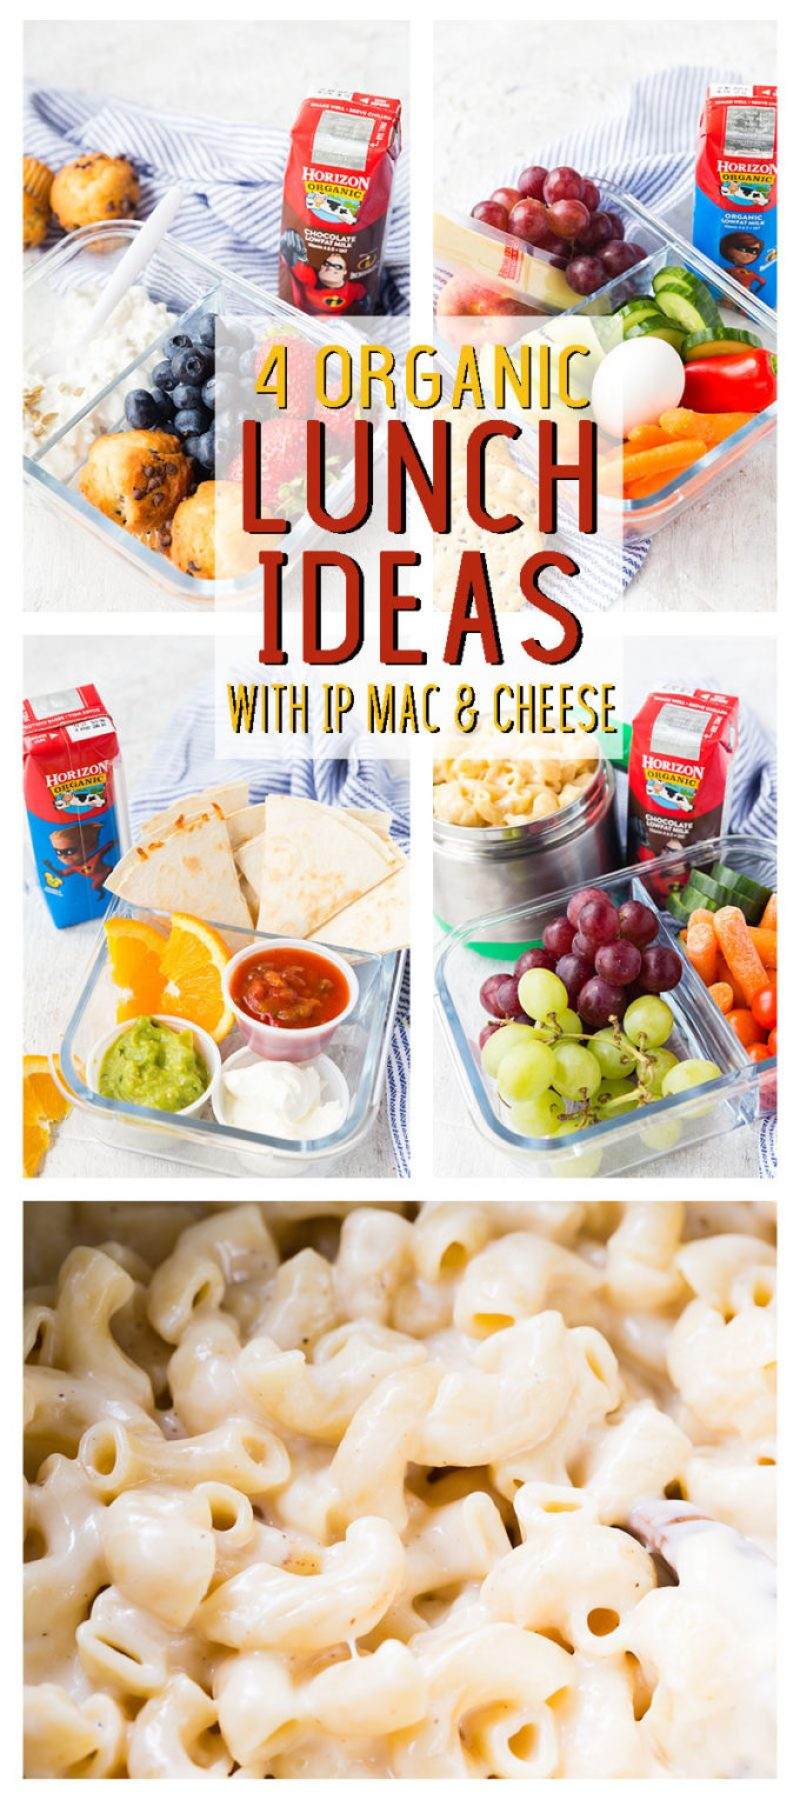 4 organic lunch ideas with Mac and cheese cooked in the pressure cooker